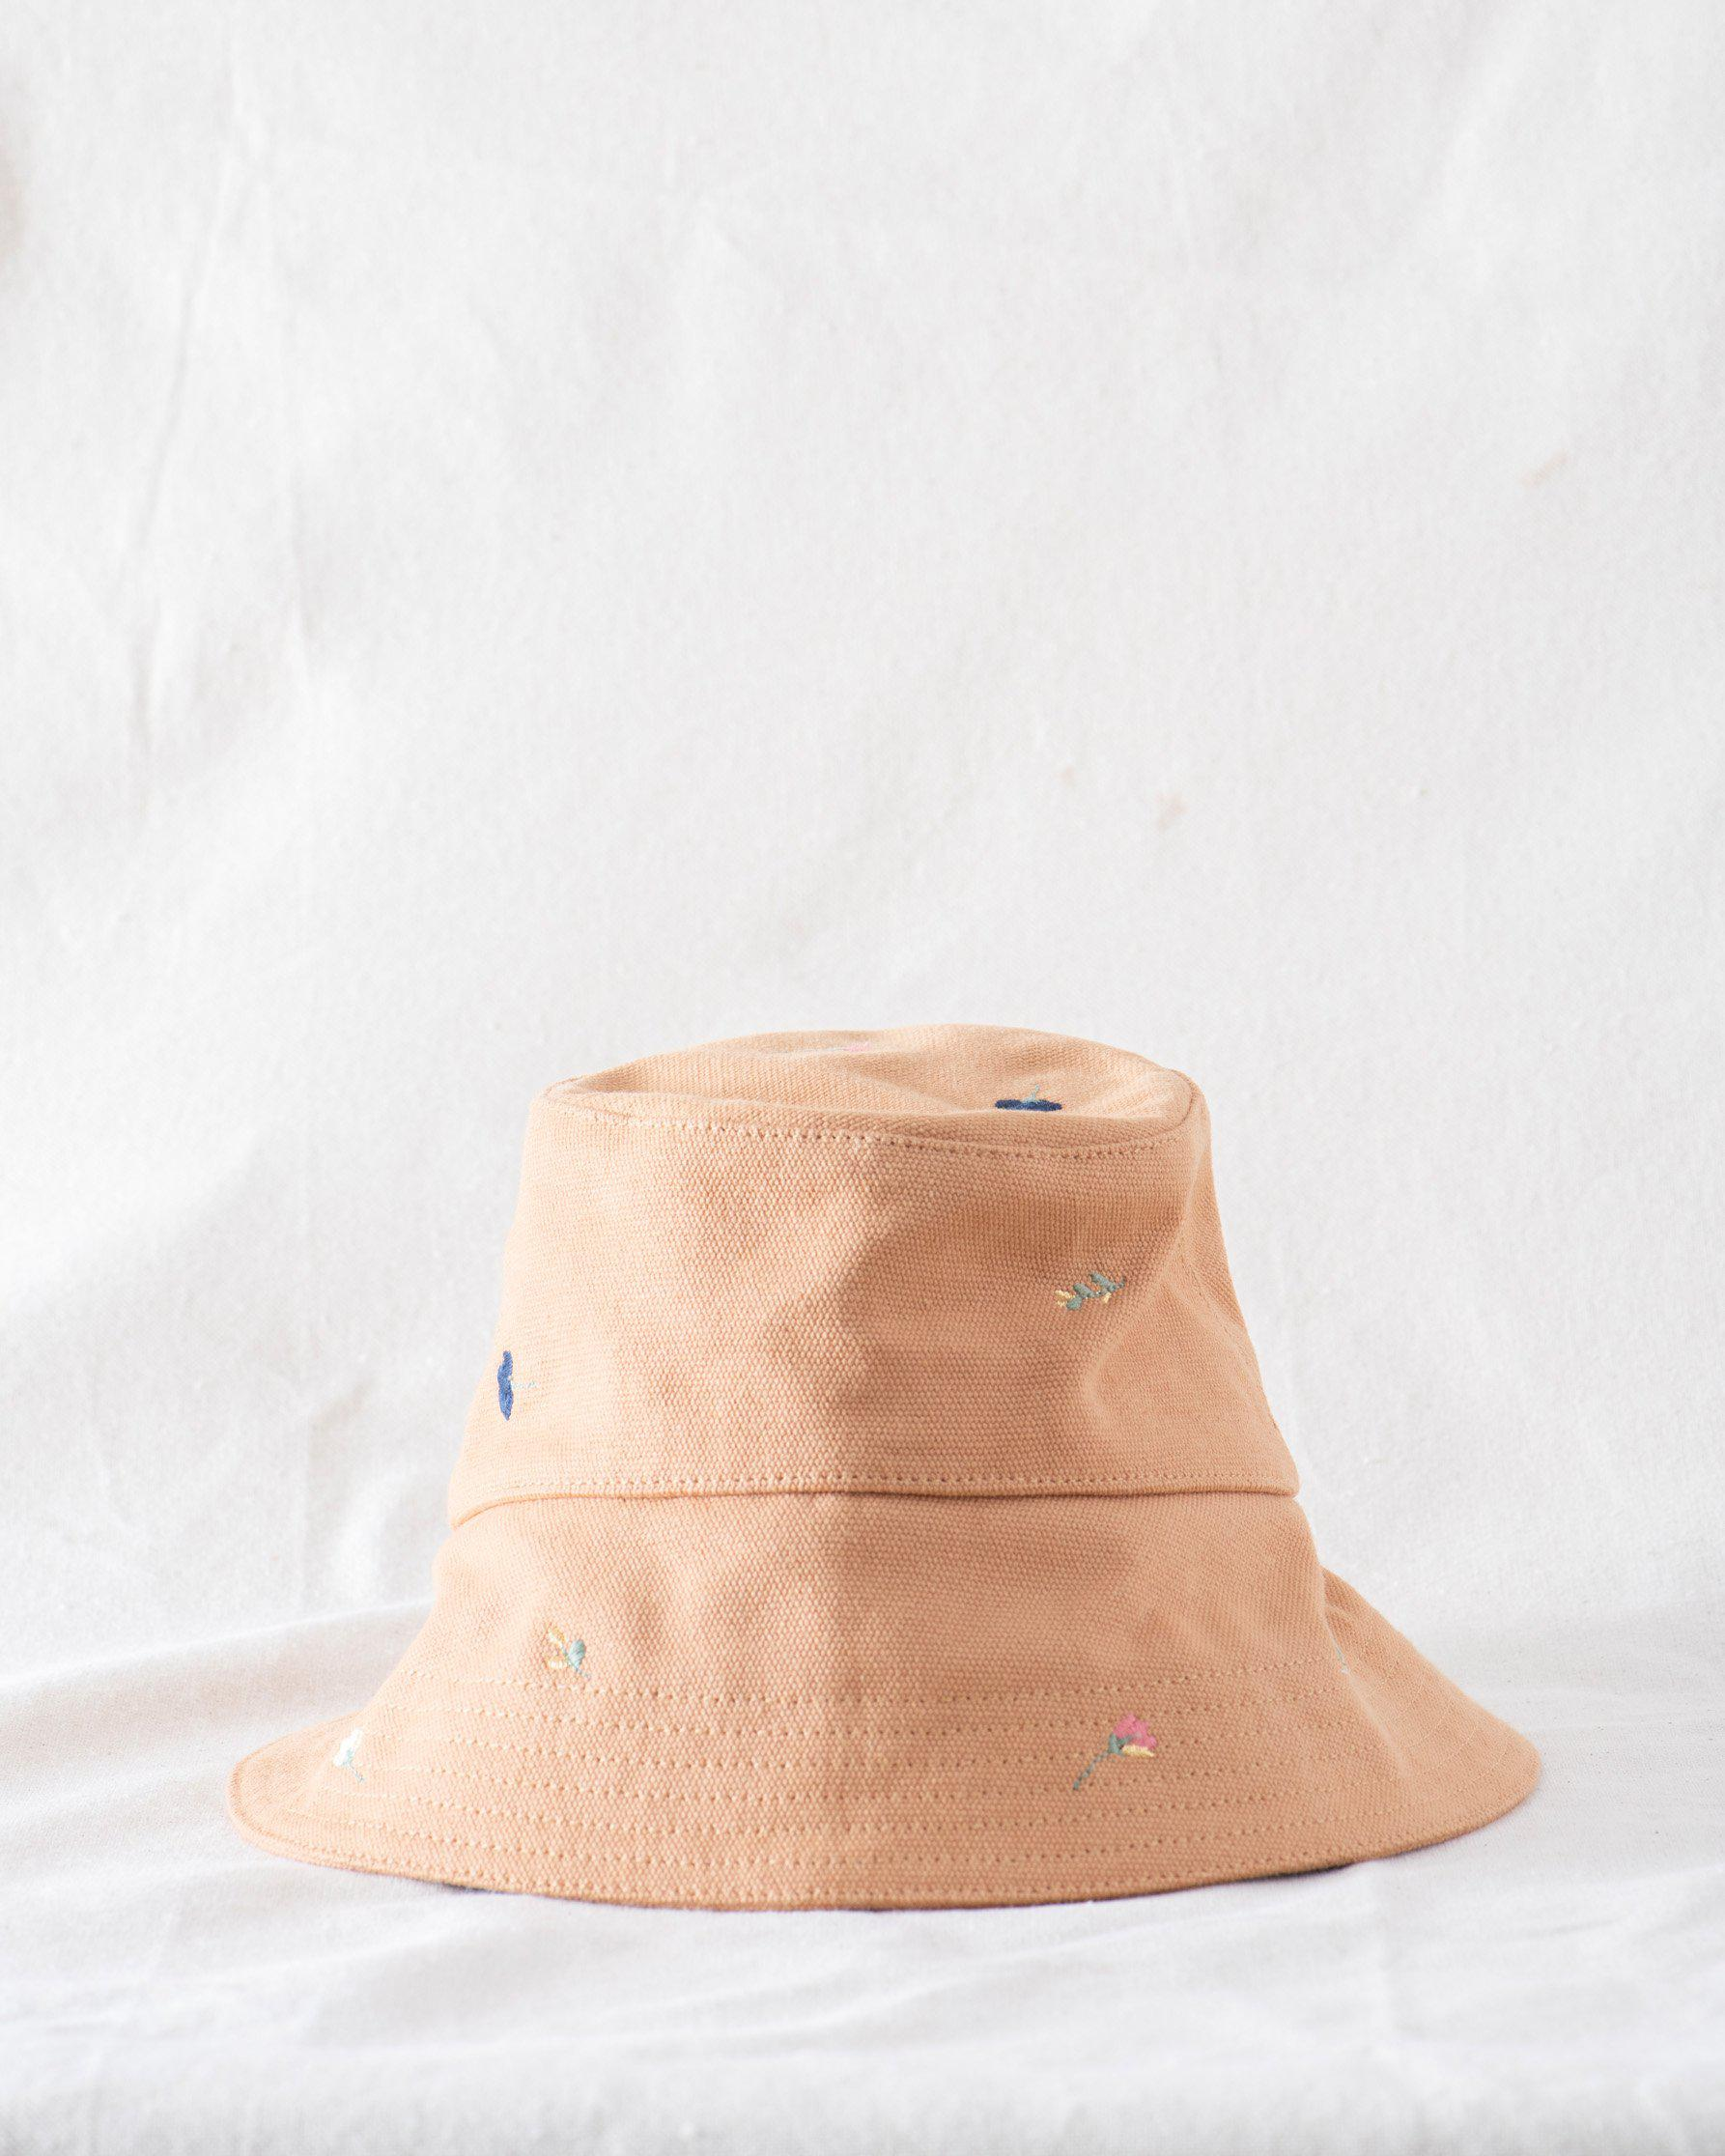 The Bucket Hat. -- Camel with Tossed Floral Embroidery